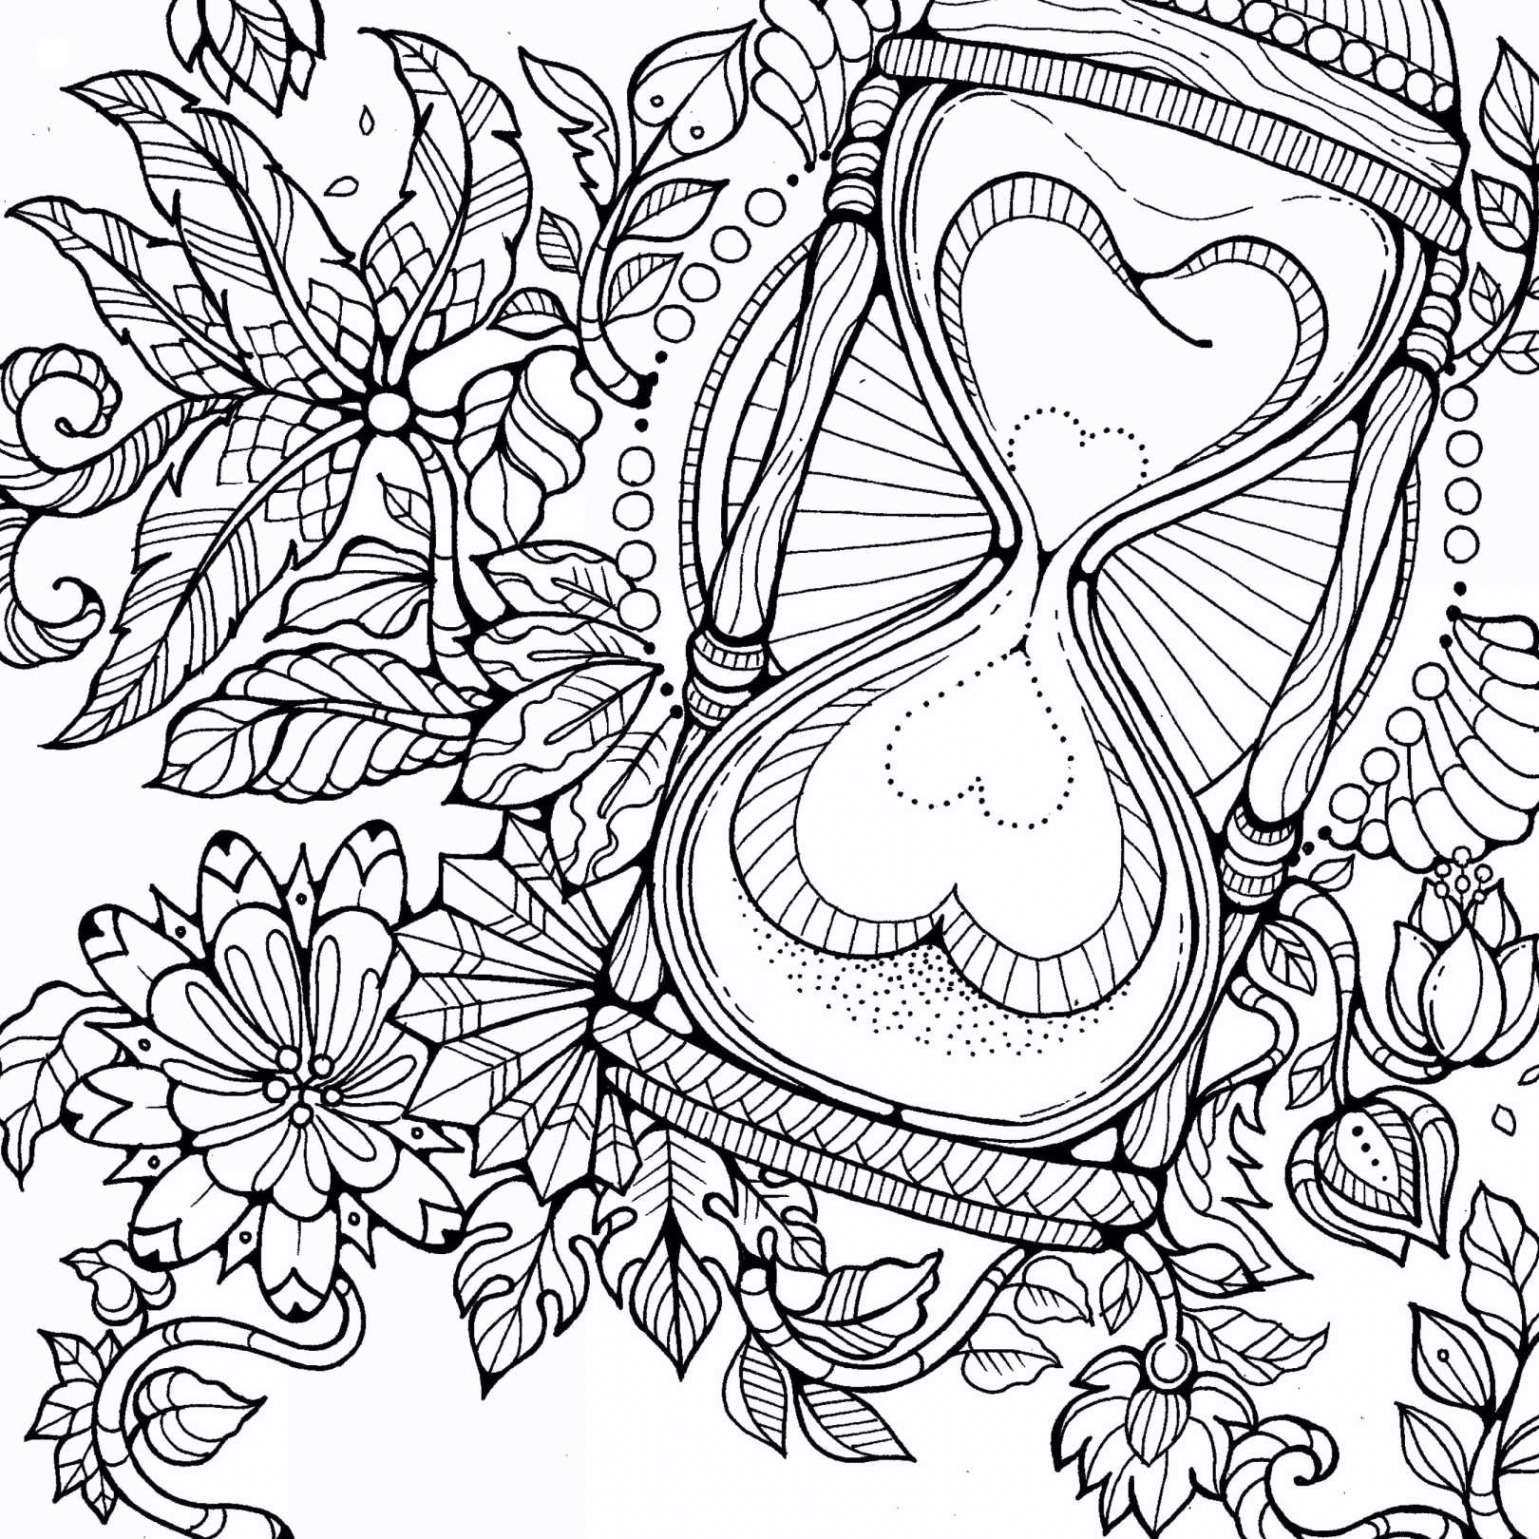 Christmas Coloring Sheets For Middle School With Colouring Activities 42 Printable Pages